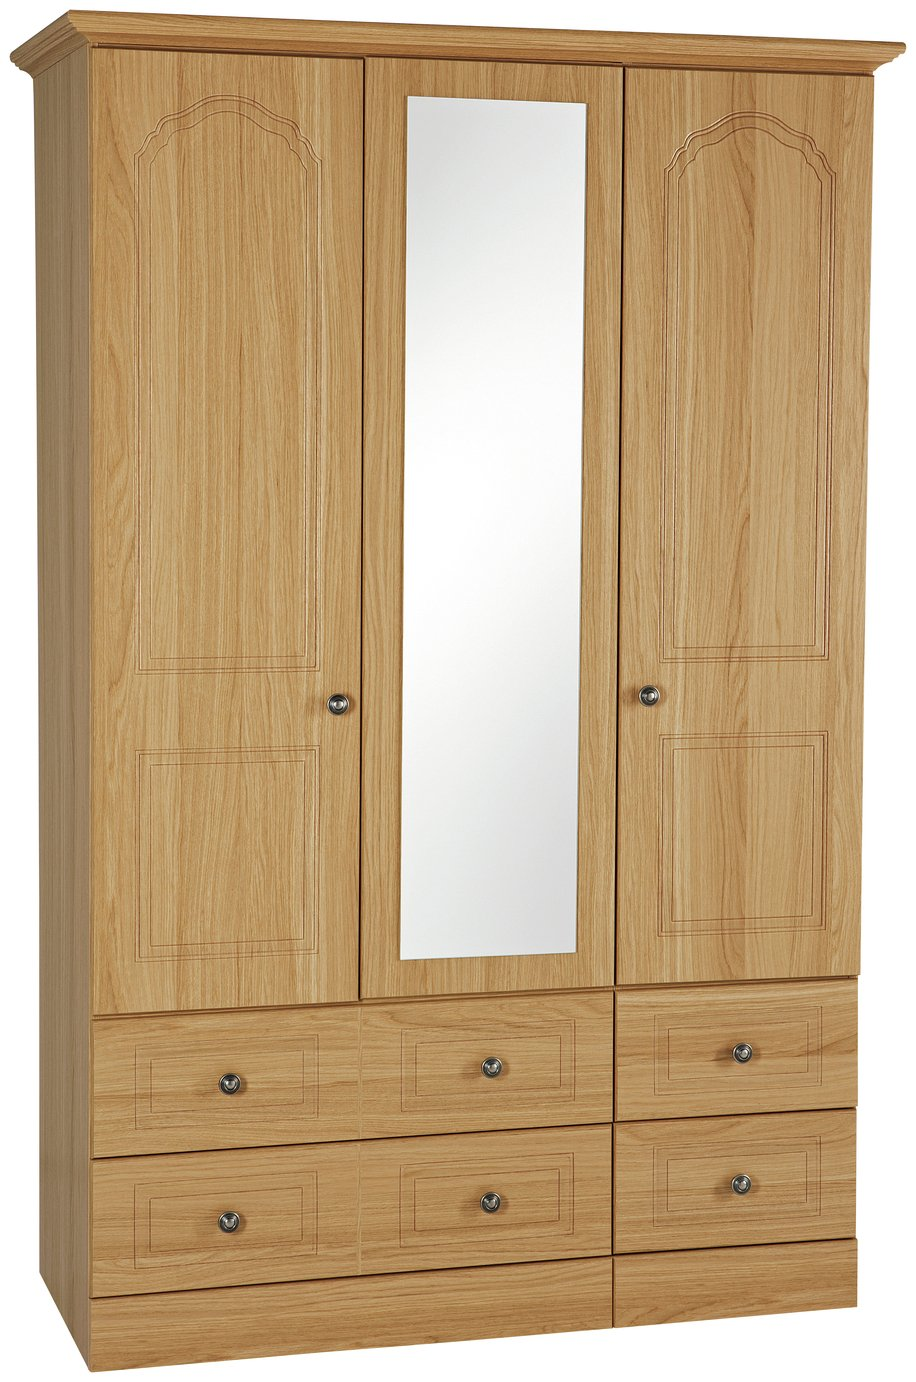 Image of Collection Stratford 3 Dr 4 Drw Mirrored Wardrobe - Oak Eff